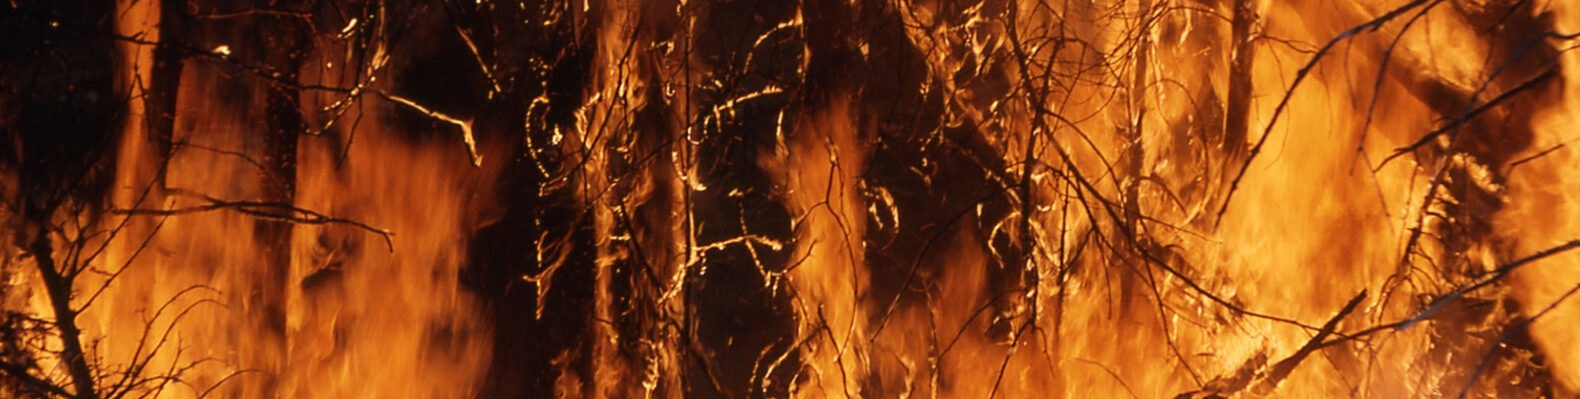 flames engulfing trees in a forest